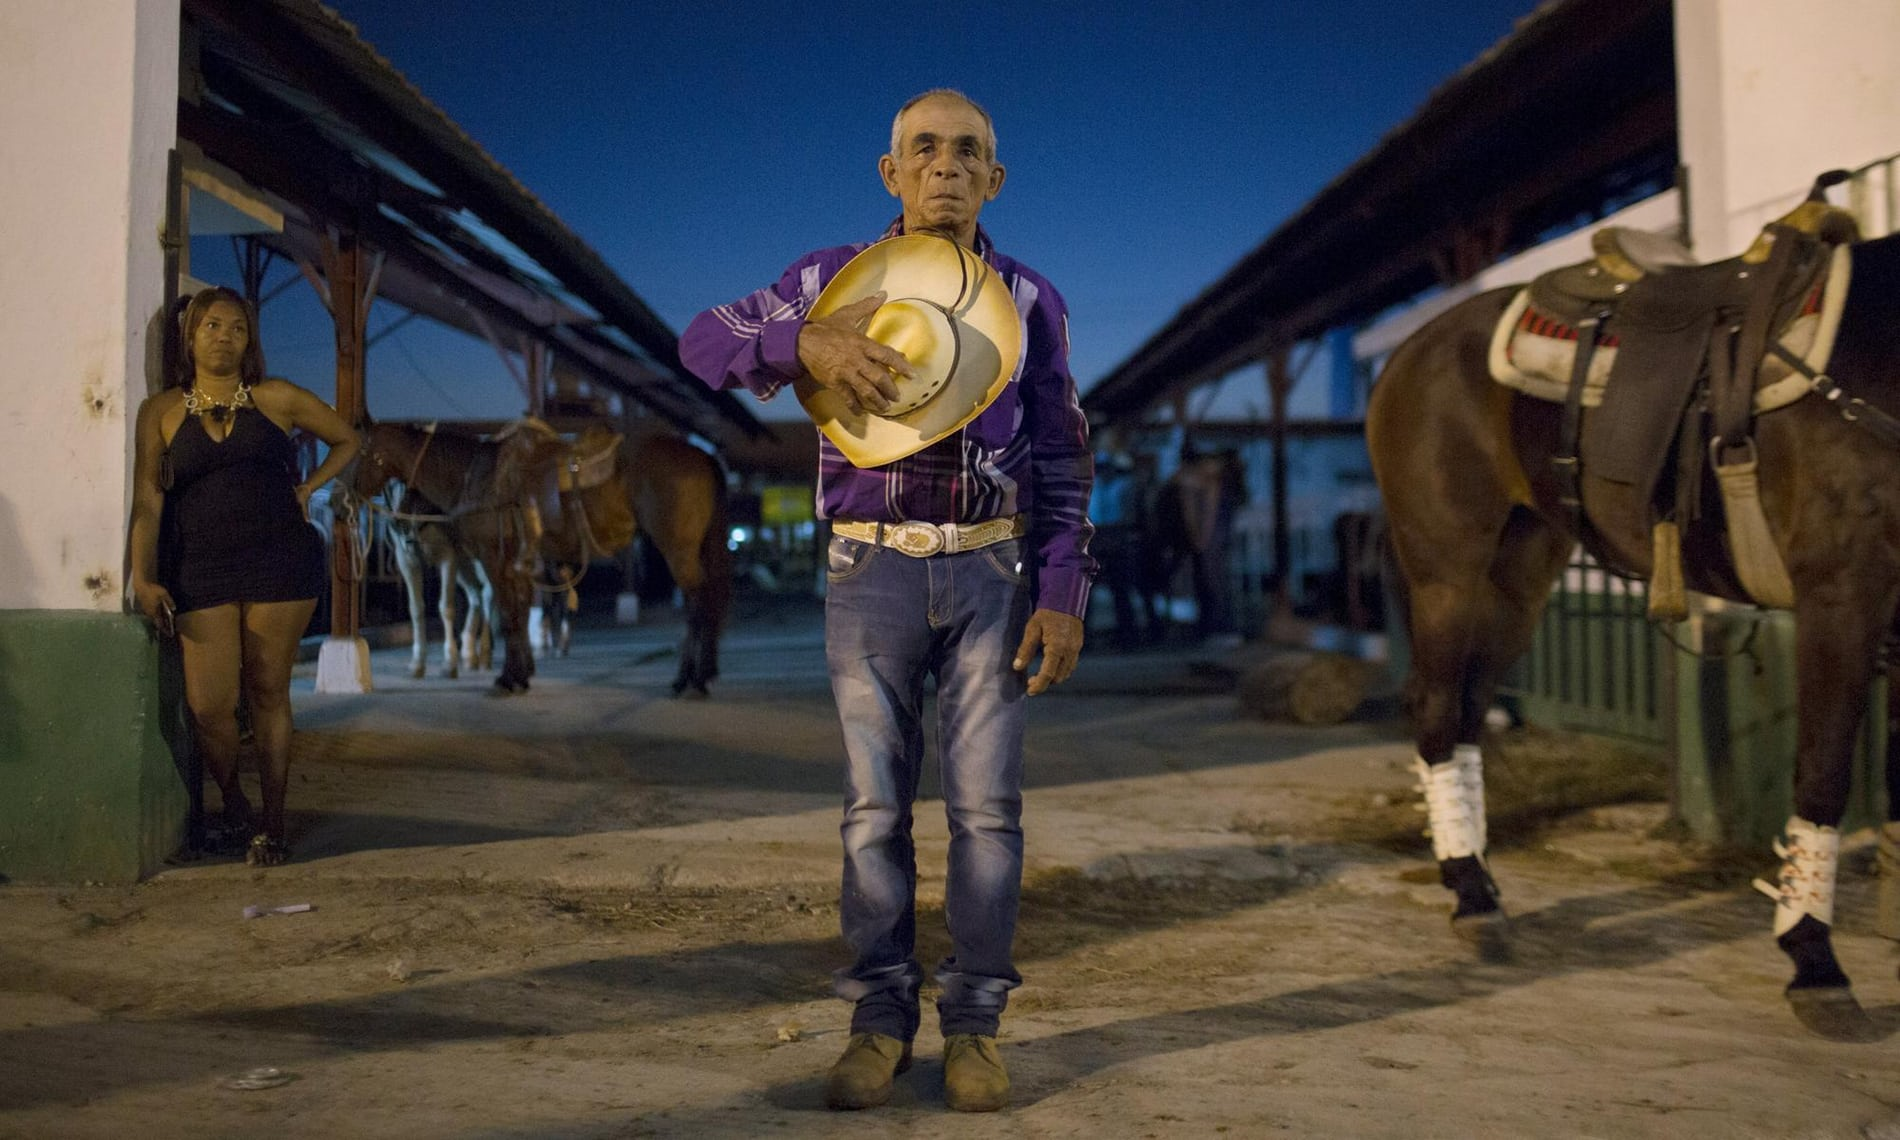 Cuban Cowboys - series